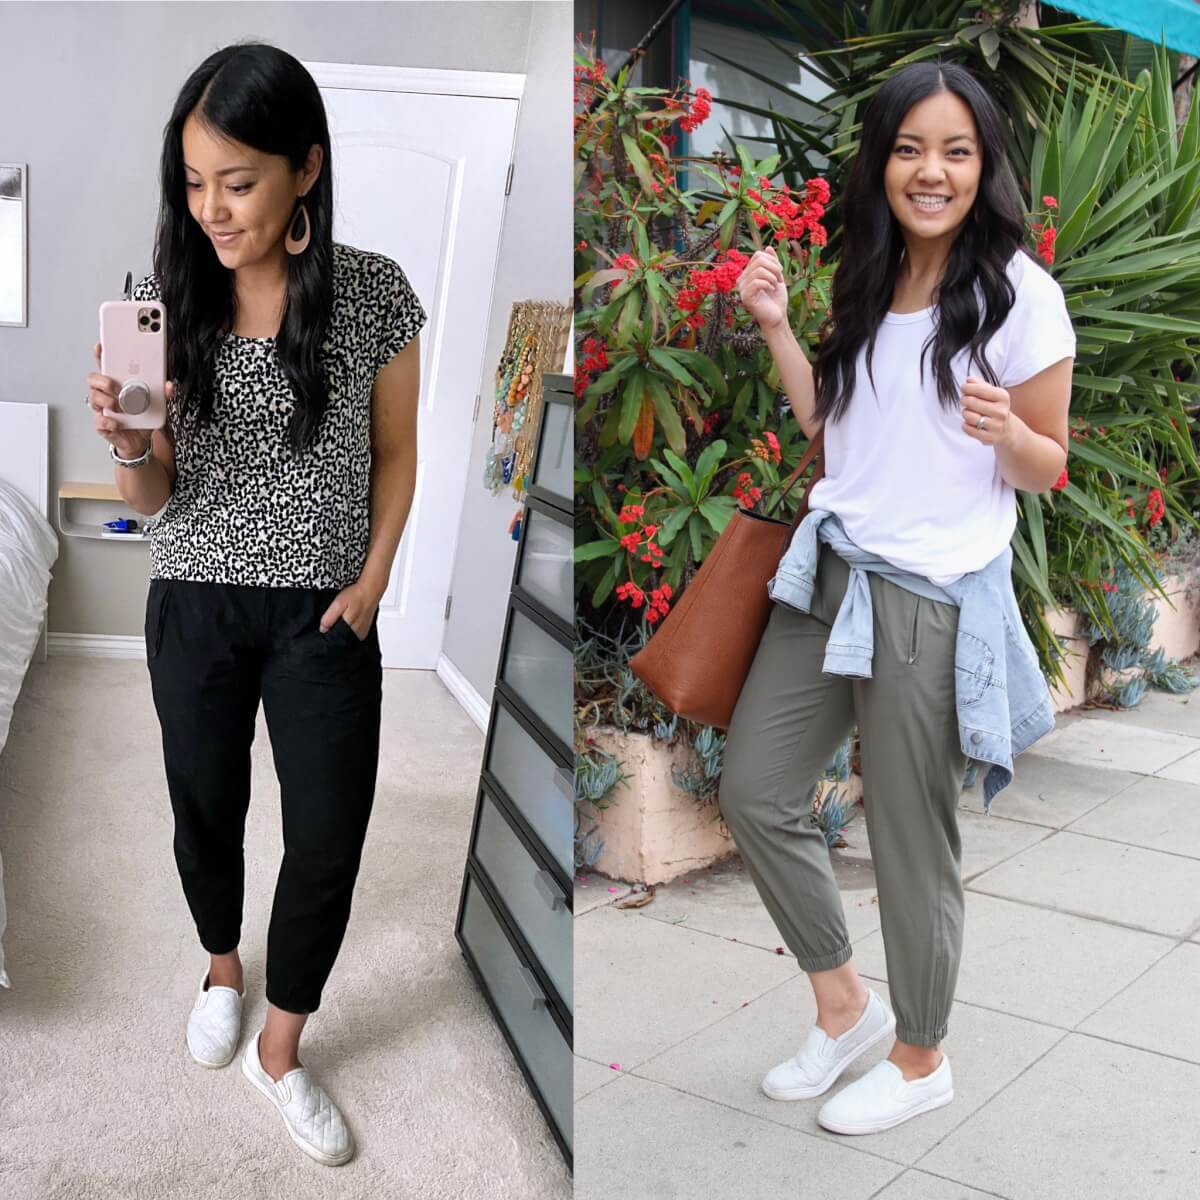 Casual Outfit: Old Navy luxe tunic tee leopard white + stretchtech joggers black olive + white slip-on sneakers + denim jacket + tan tote